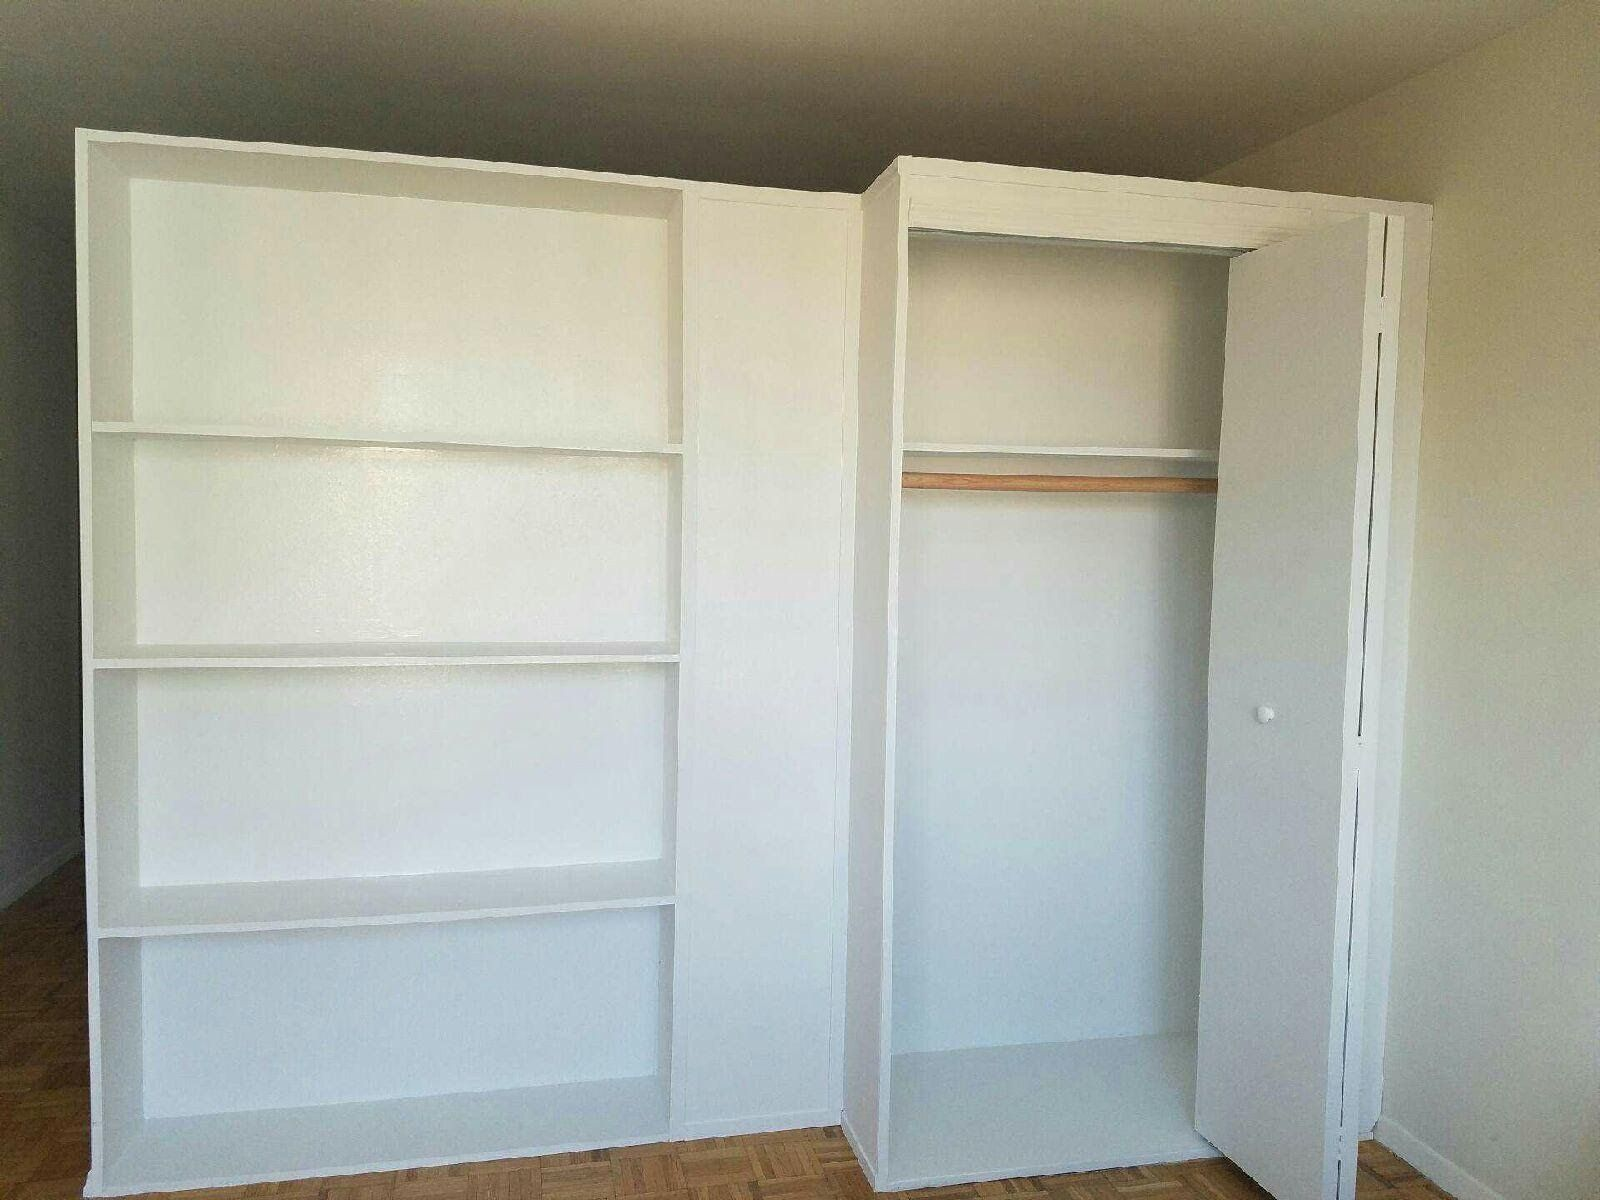 white a design space divider maimazing bookcase ideas bookshelf and dividers stylish as inspiration room modern